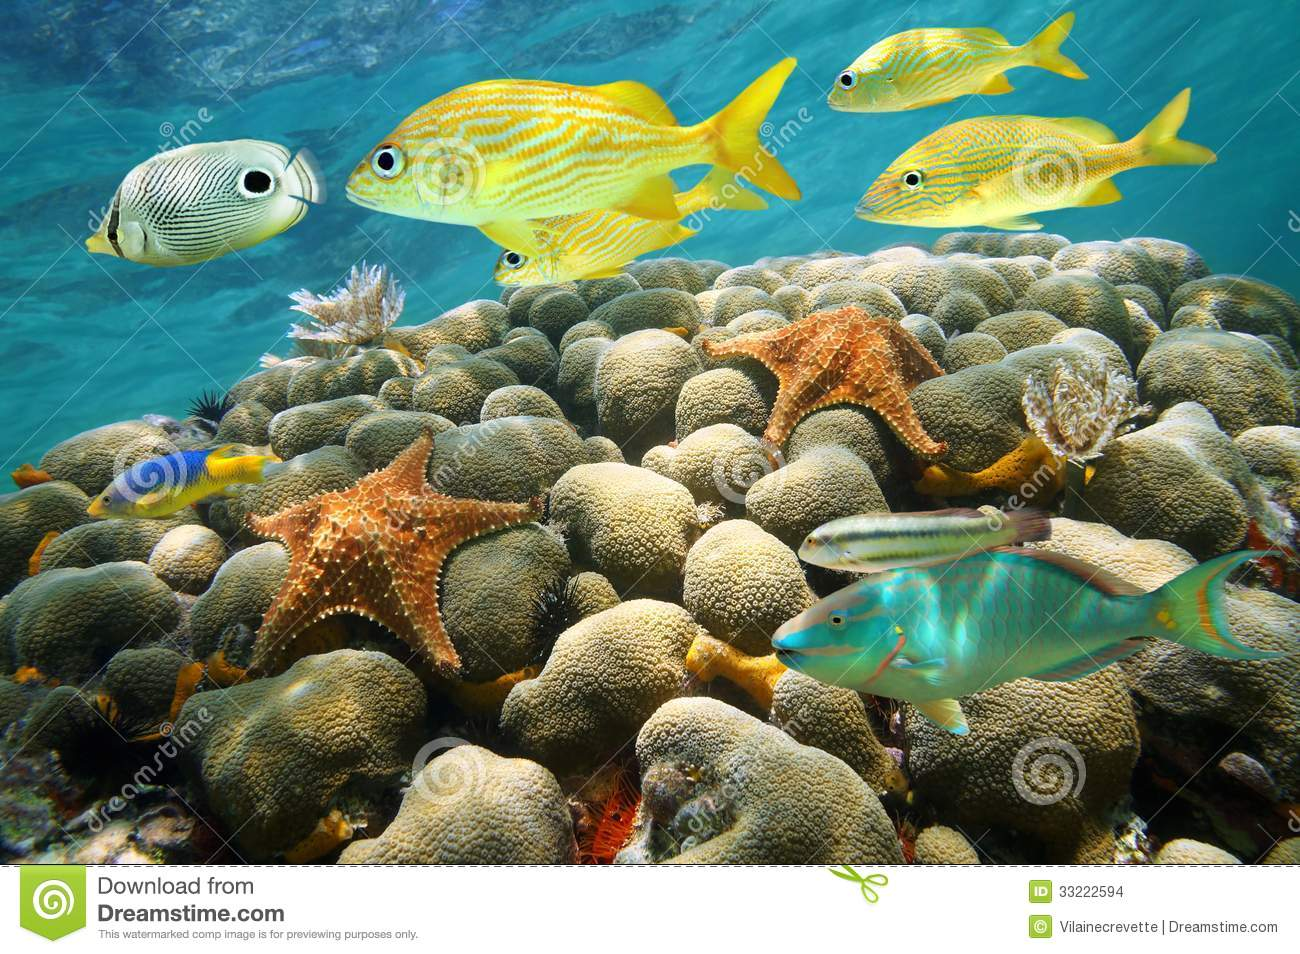 Starfish and tropical fish in a coral reef stock photo for Reef tropical fish